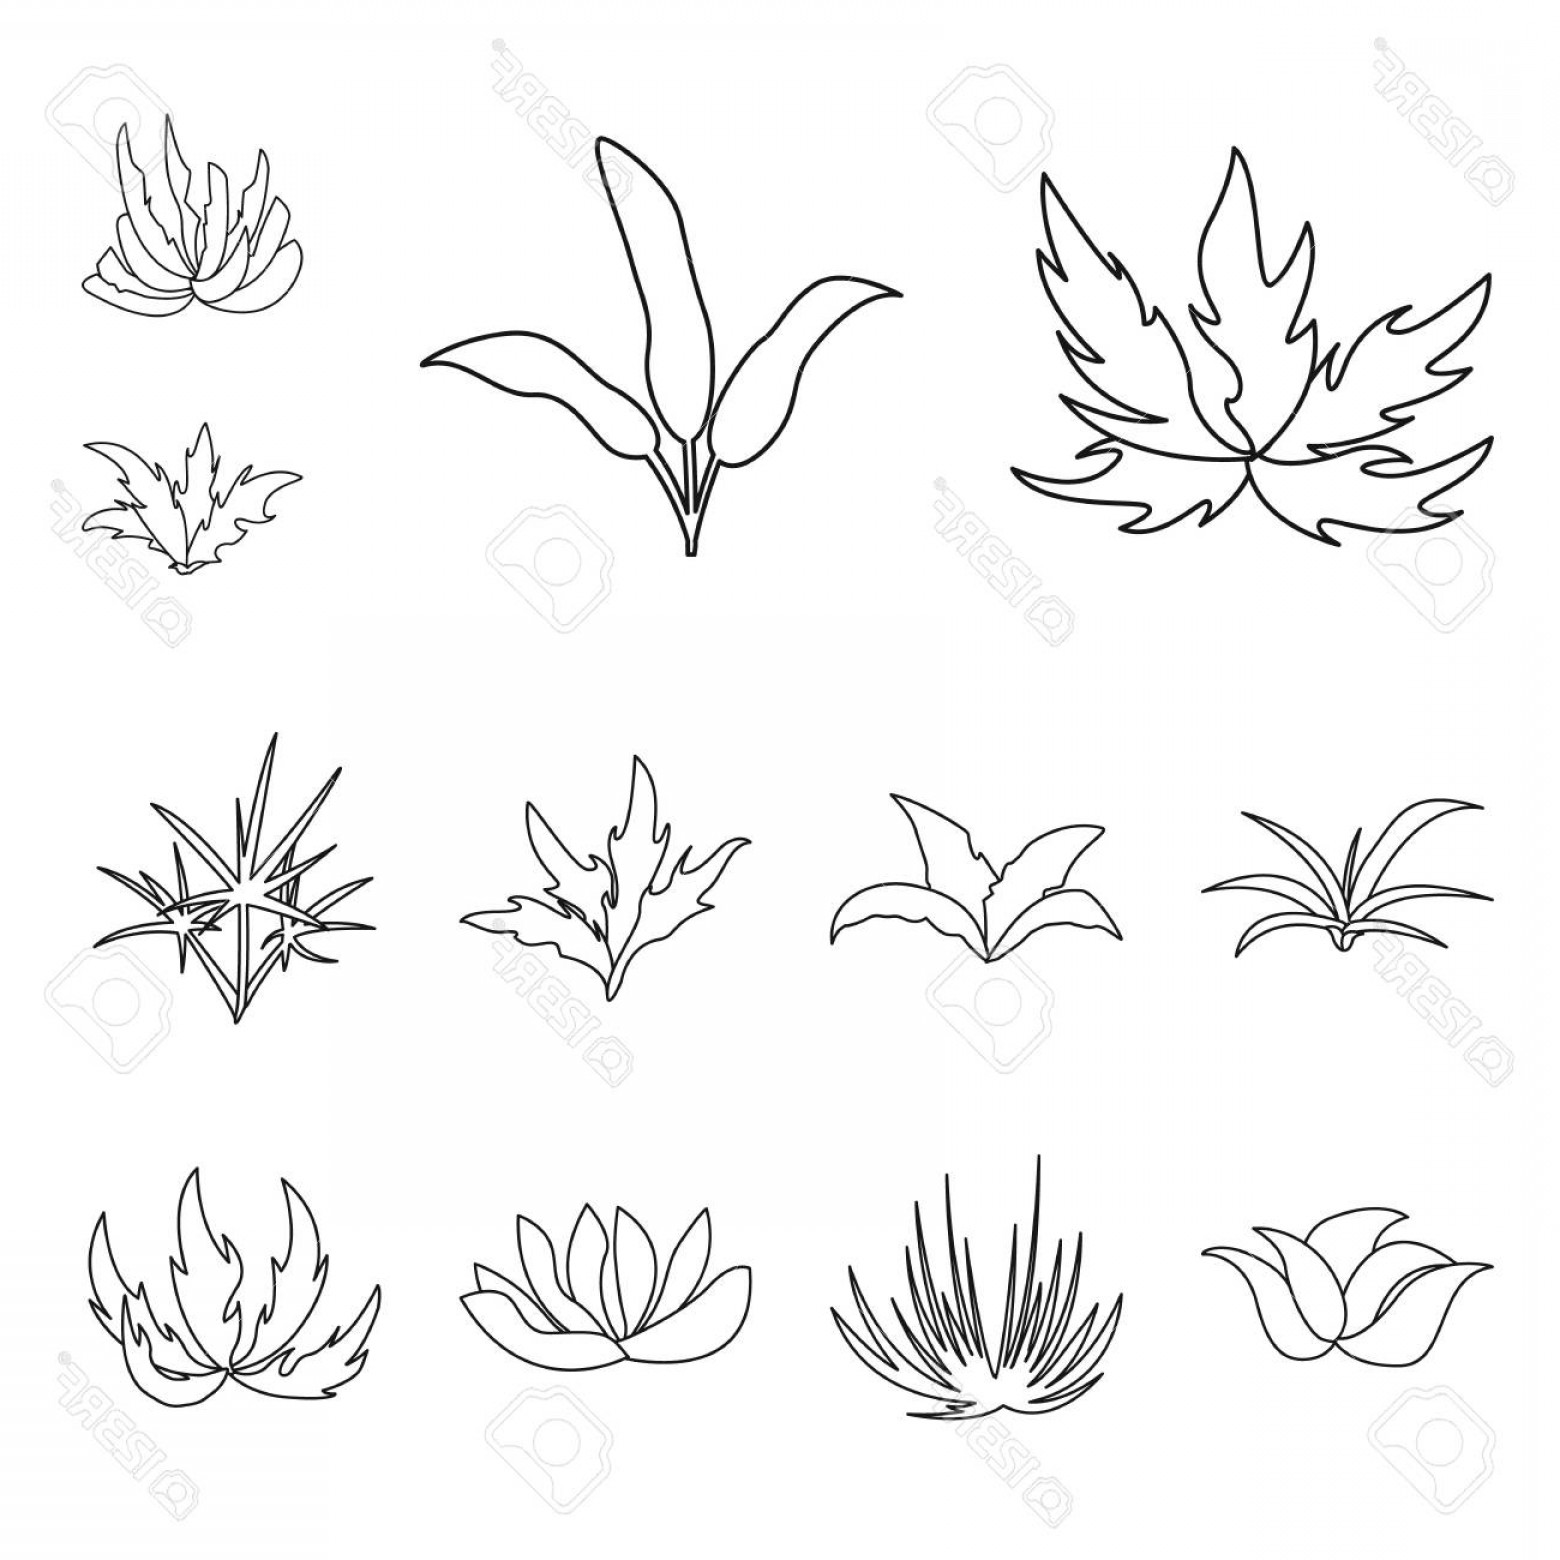 Floral Vector Icon: Photostock Vector Vector Illustration Of Hedge And Shrub Symbol Set Of Hedge And Floral Vector Icon For Stock